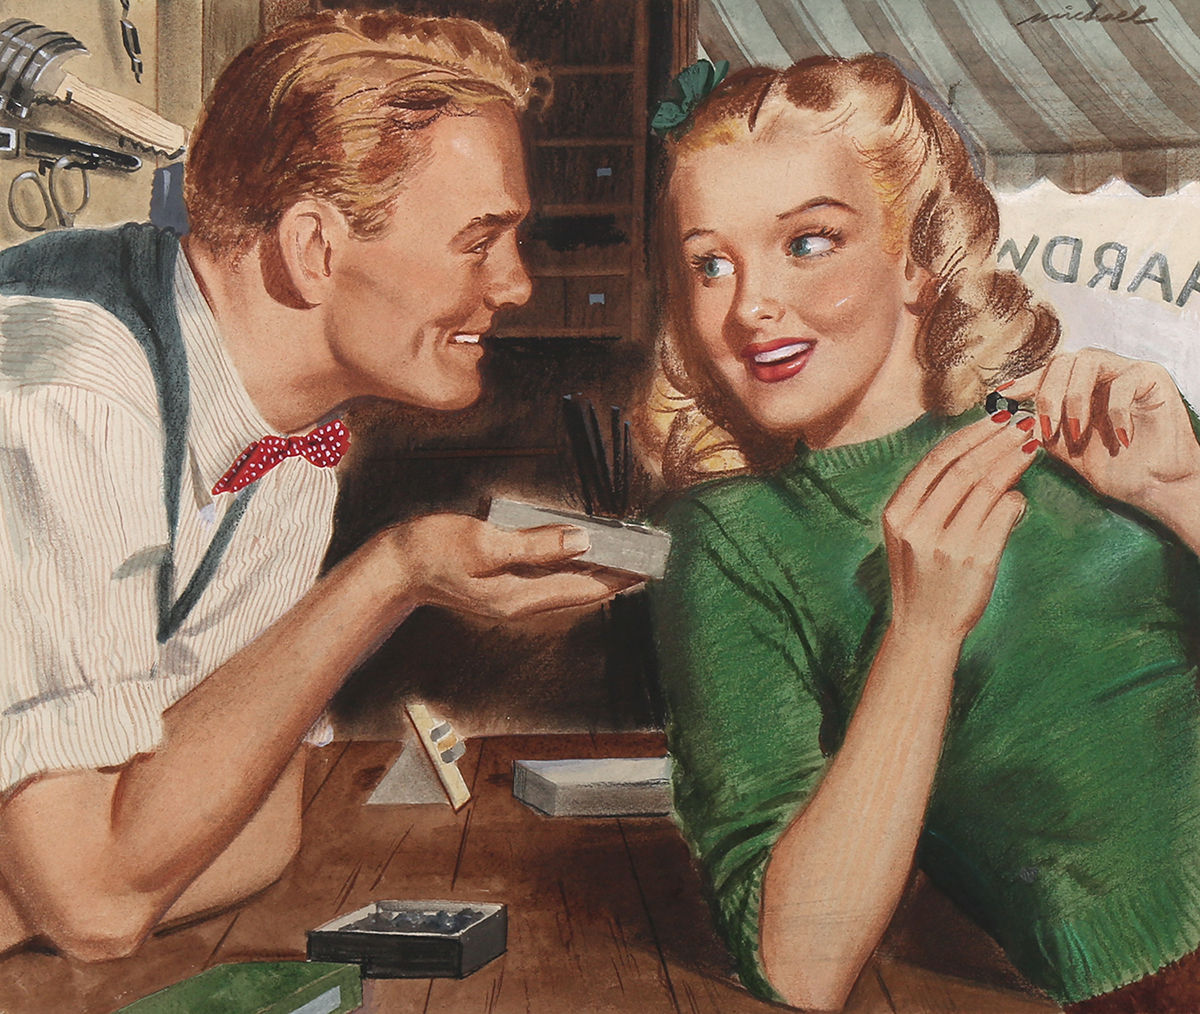 A full view of the illustration; shows a young, blonde hardware store clerk and a young, blonde customer flirting